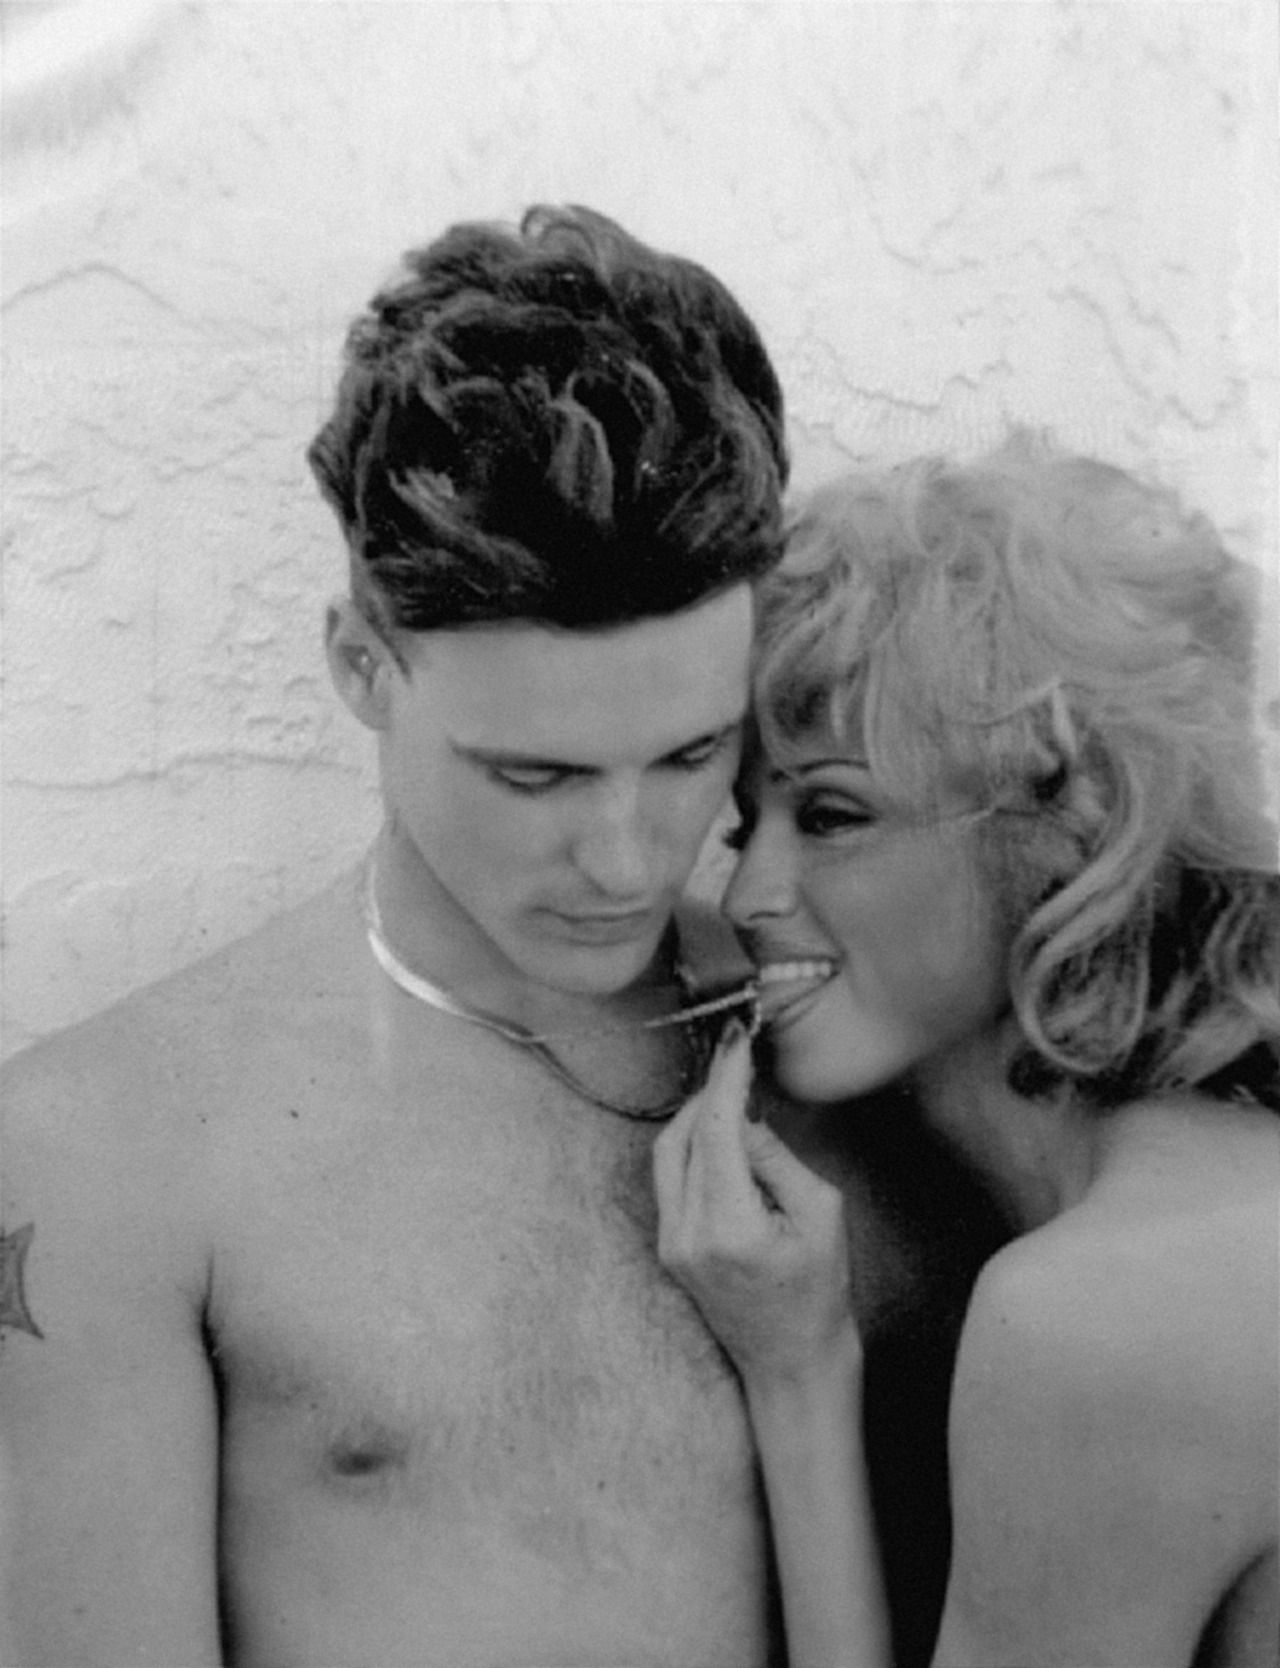 Vanilla ice madonna picture sex book